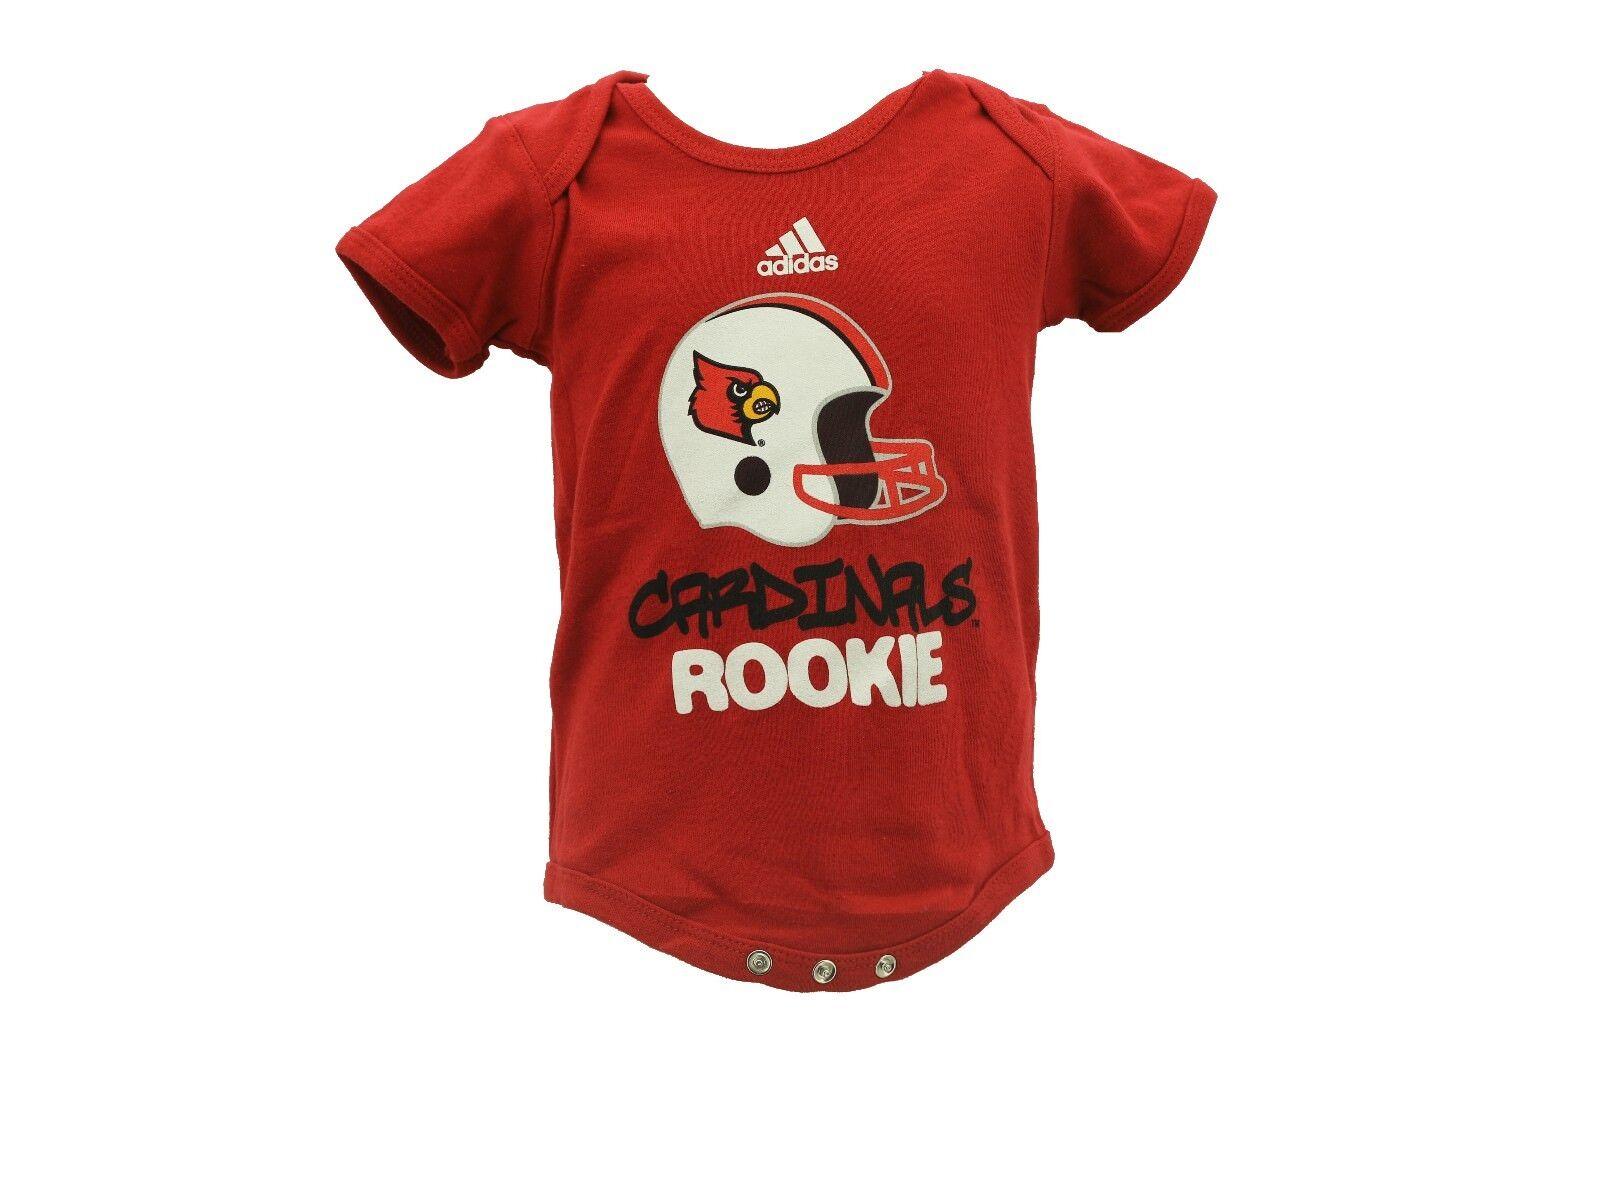 afee9df1 Details about NCAA Louisville Cardinal Official Merchandise Infant Baby  Creeper Bodysuit New